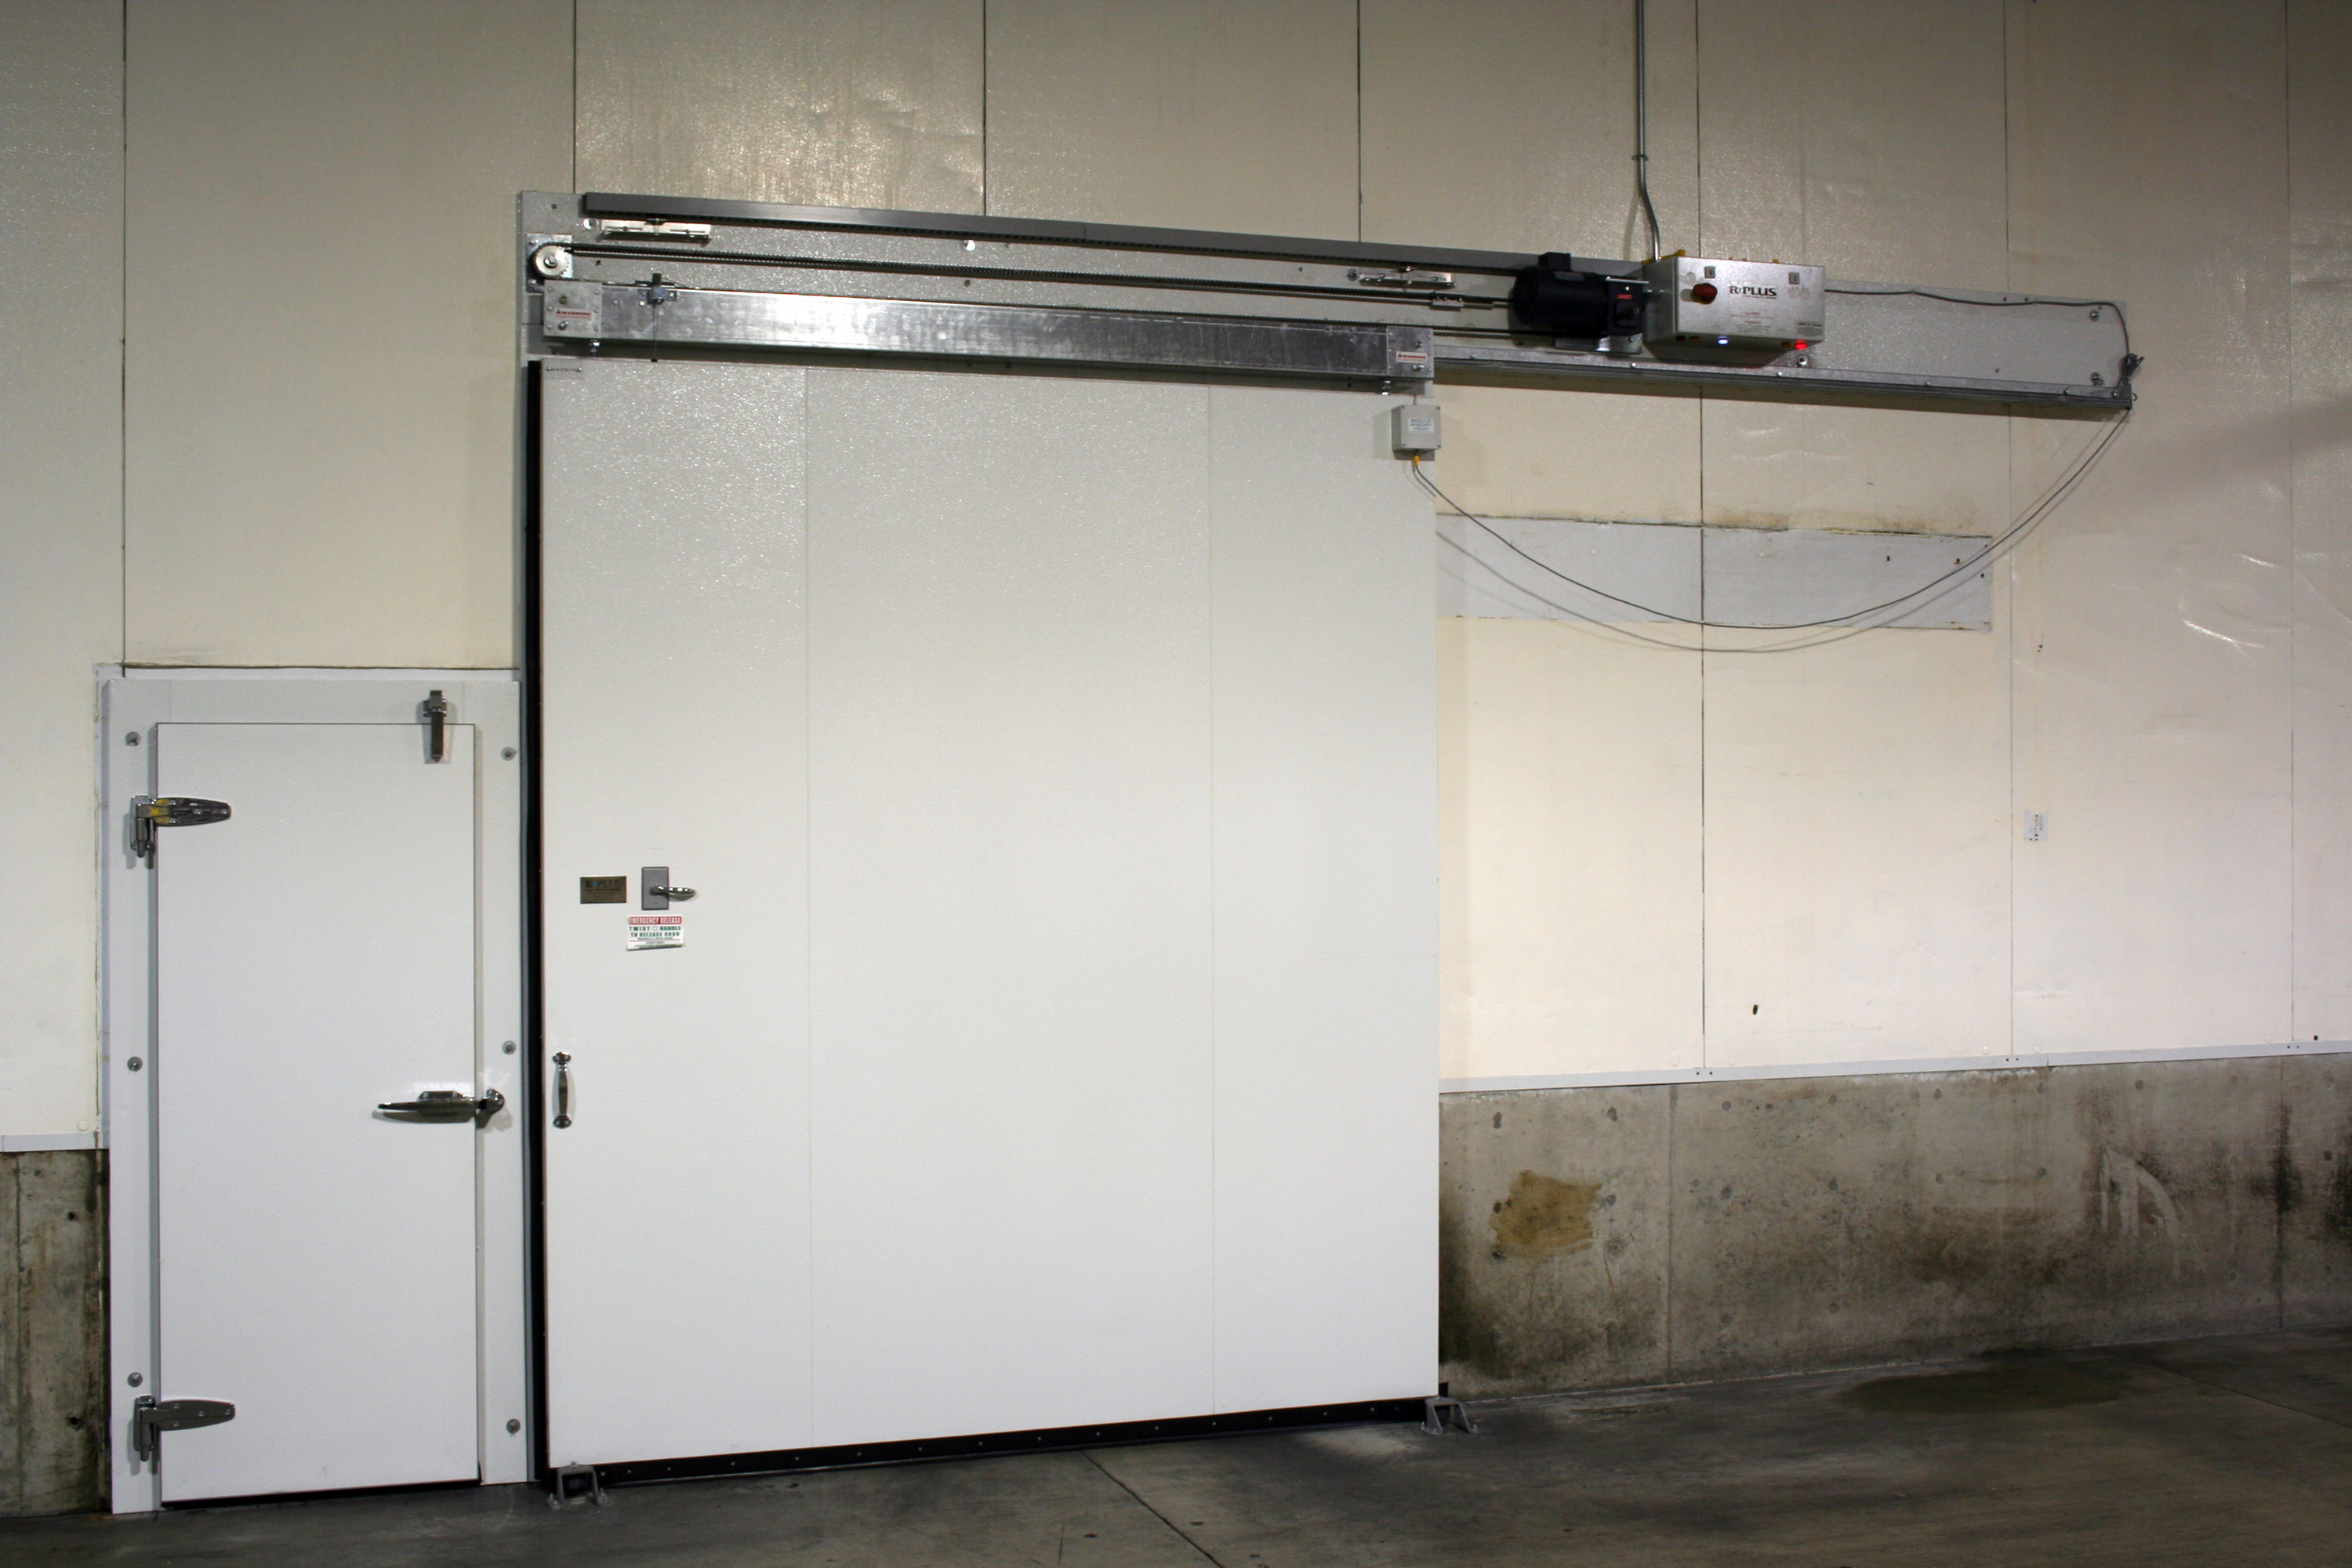 Closed Horizontal Sliding Door Powered By ICC 5 Controller And Swing Door  Cold Storage Fruit Facility In Yakima, Washington